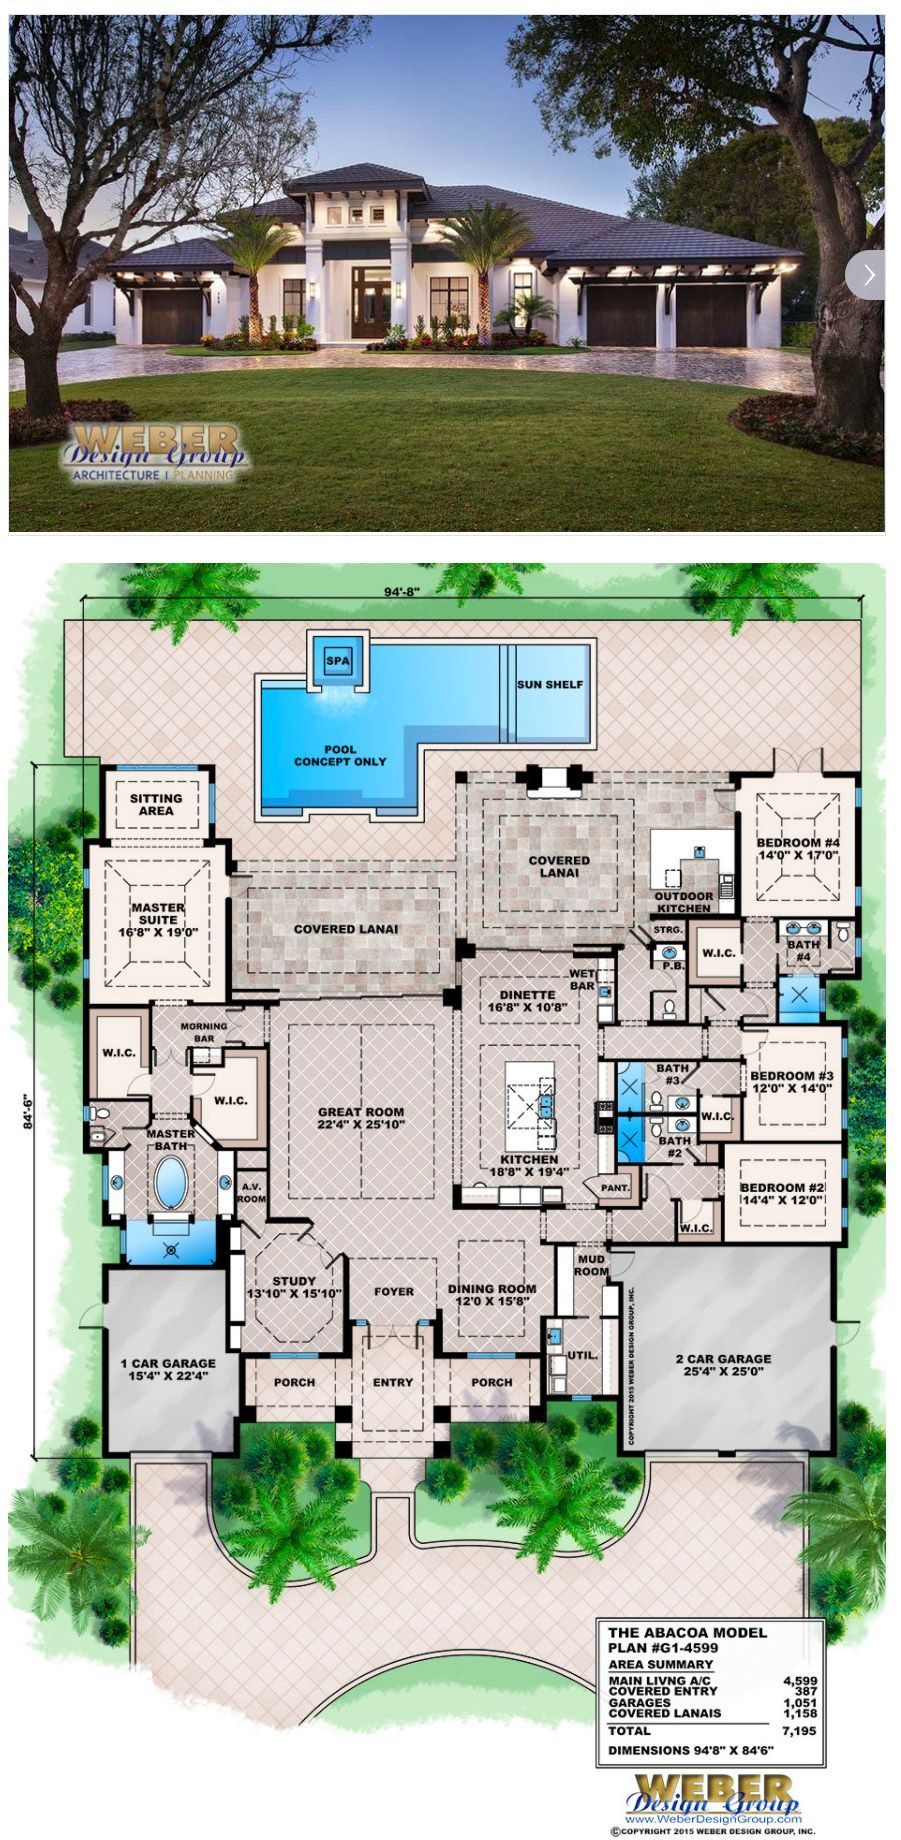 Beach House Plan Transitional West Indies Caribbean Style Floor Plan Beach House Plan Beach House Plans Contemporary House Plans